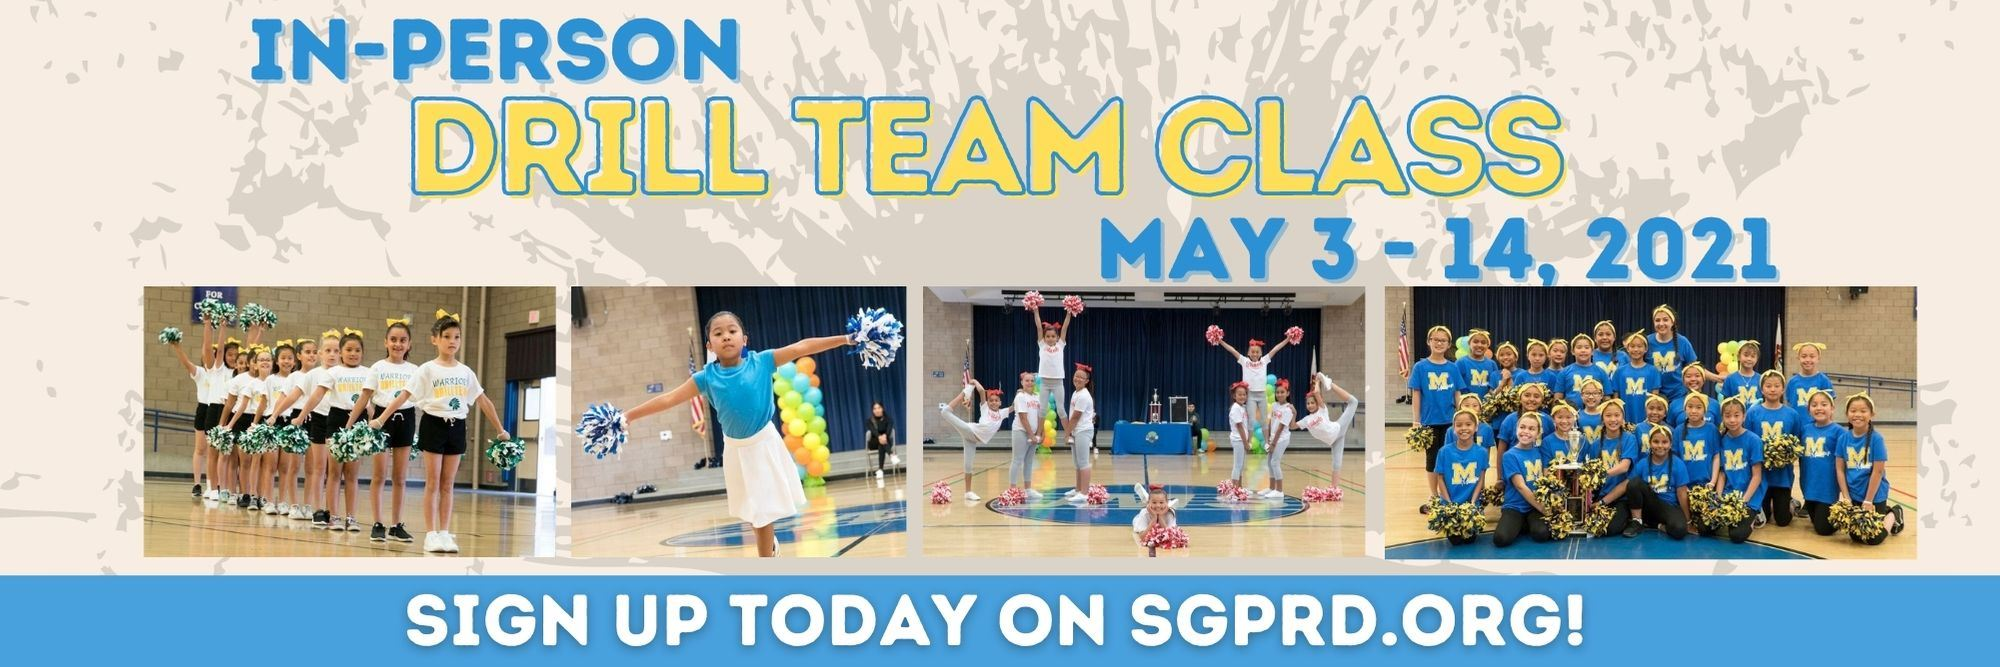 In-Person Drill Team May 3-14 Register Now at sgprd.org